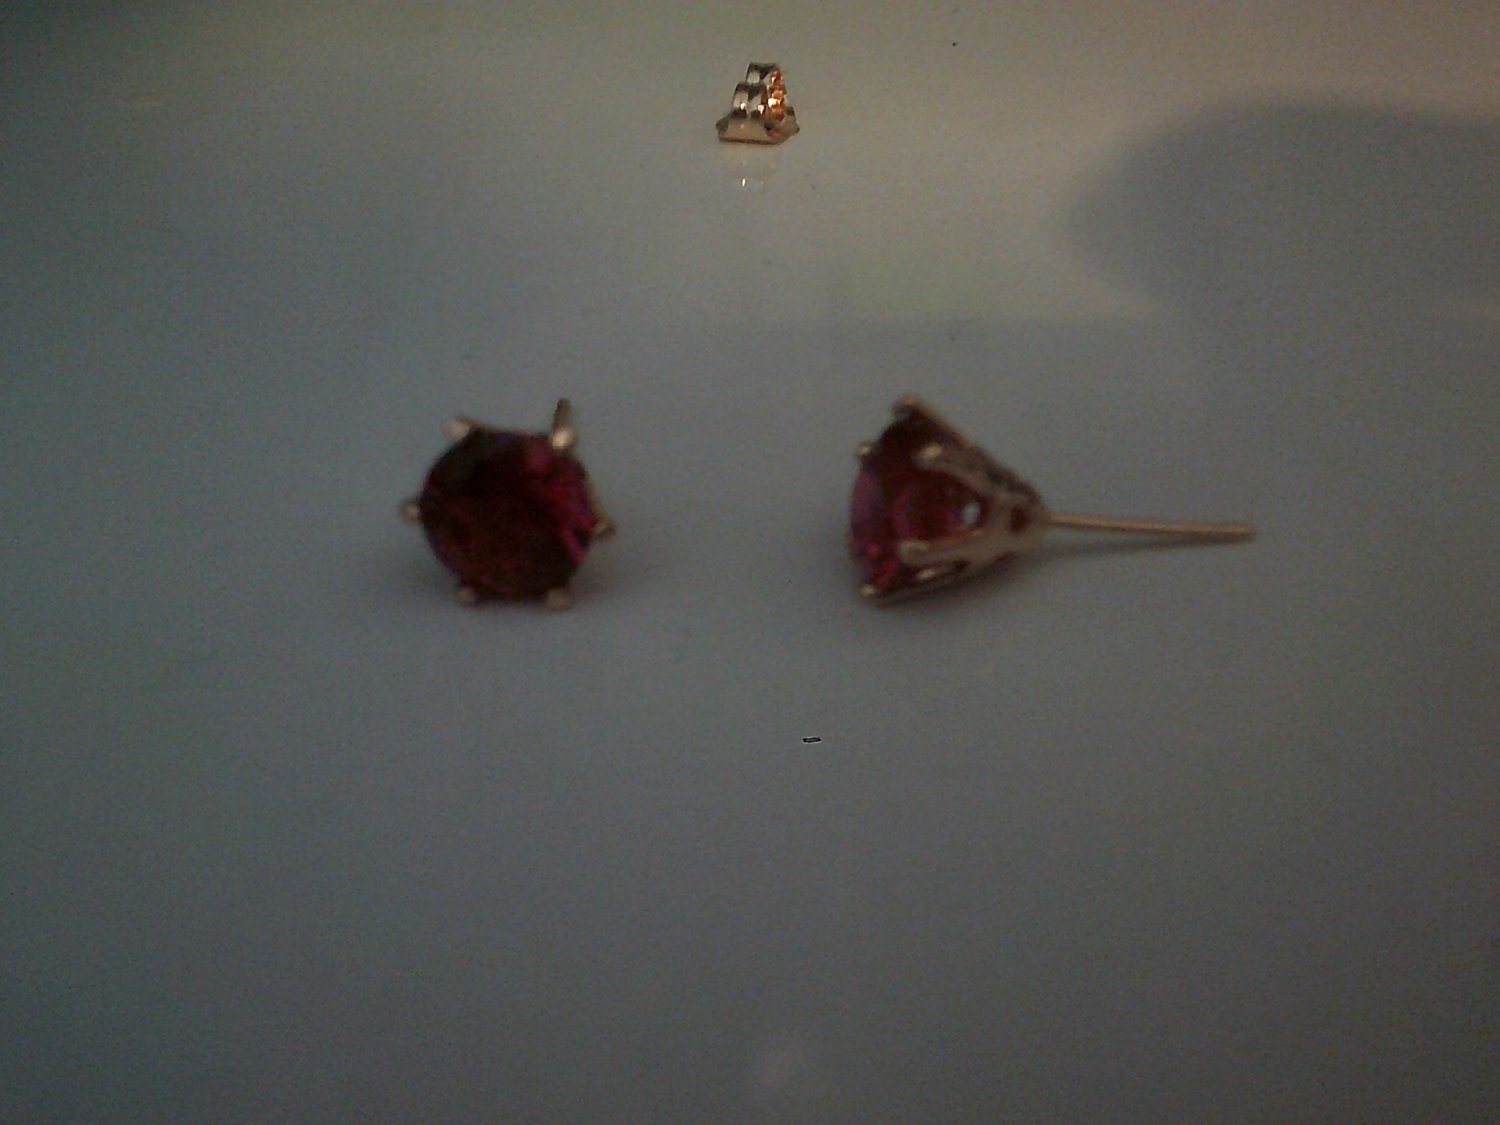 18k gold plated earrings with ruby colored cz stone